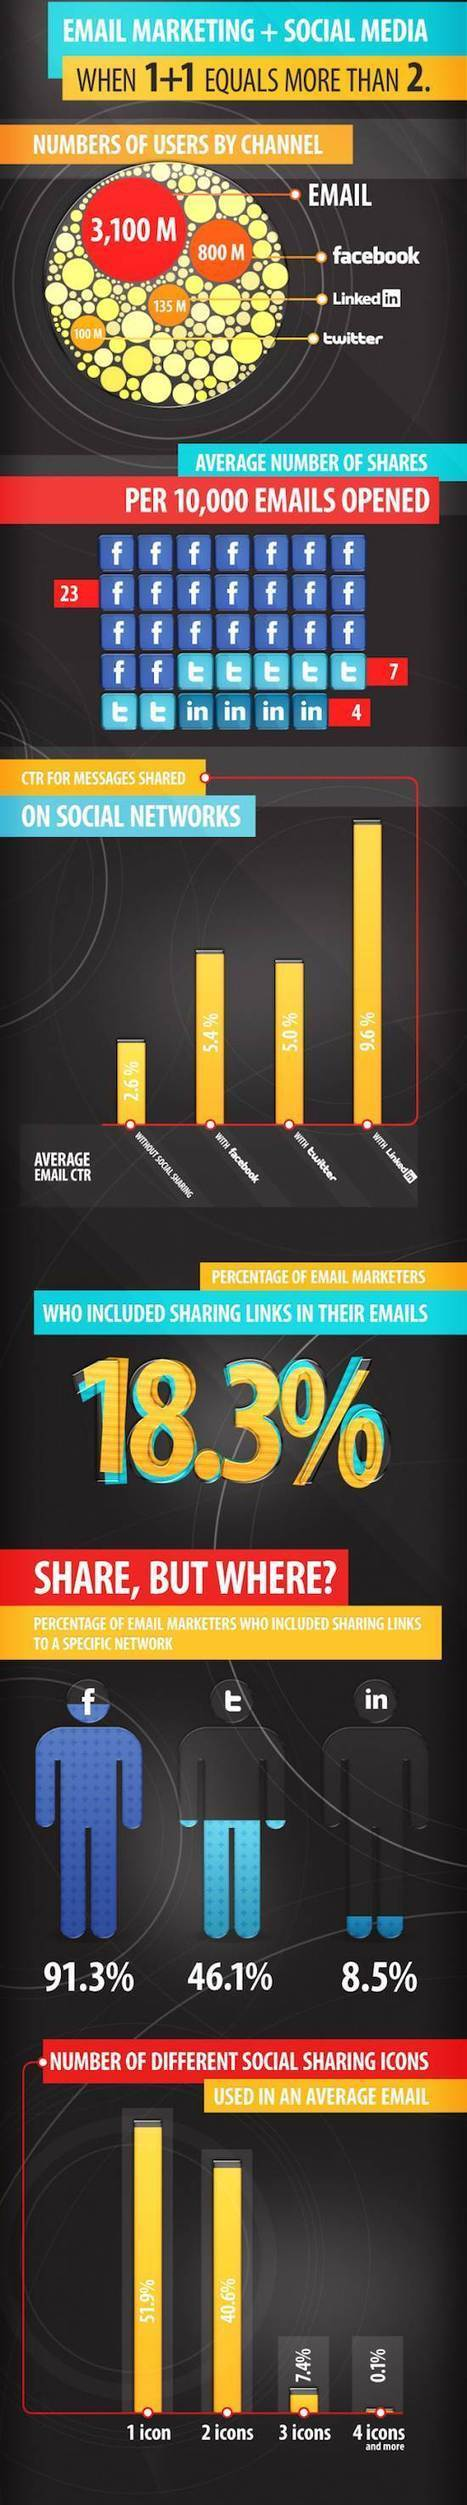 Social Sharing and Email Marketing - Infographic | Digital marketing | Scoop.it